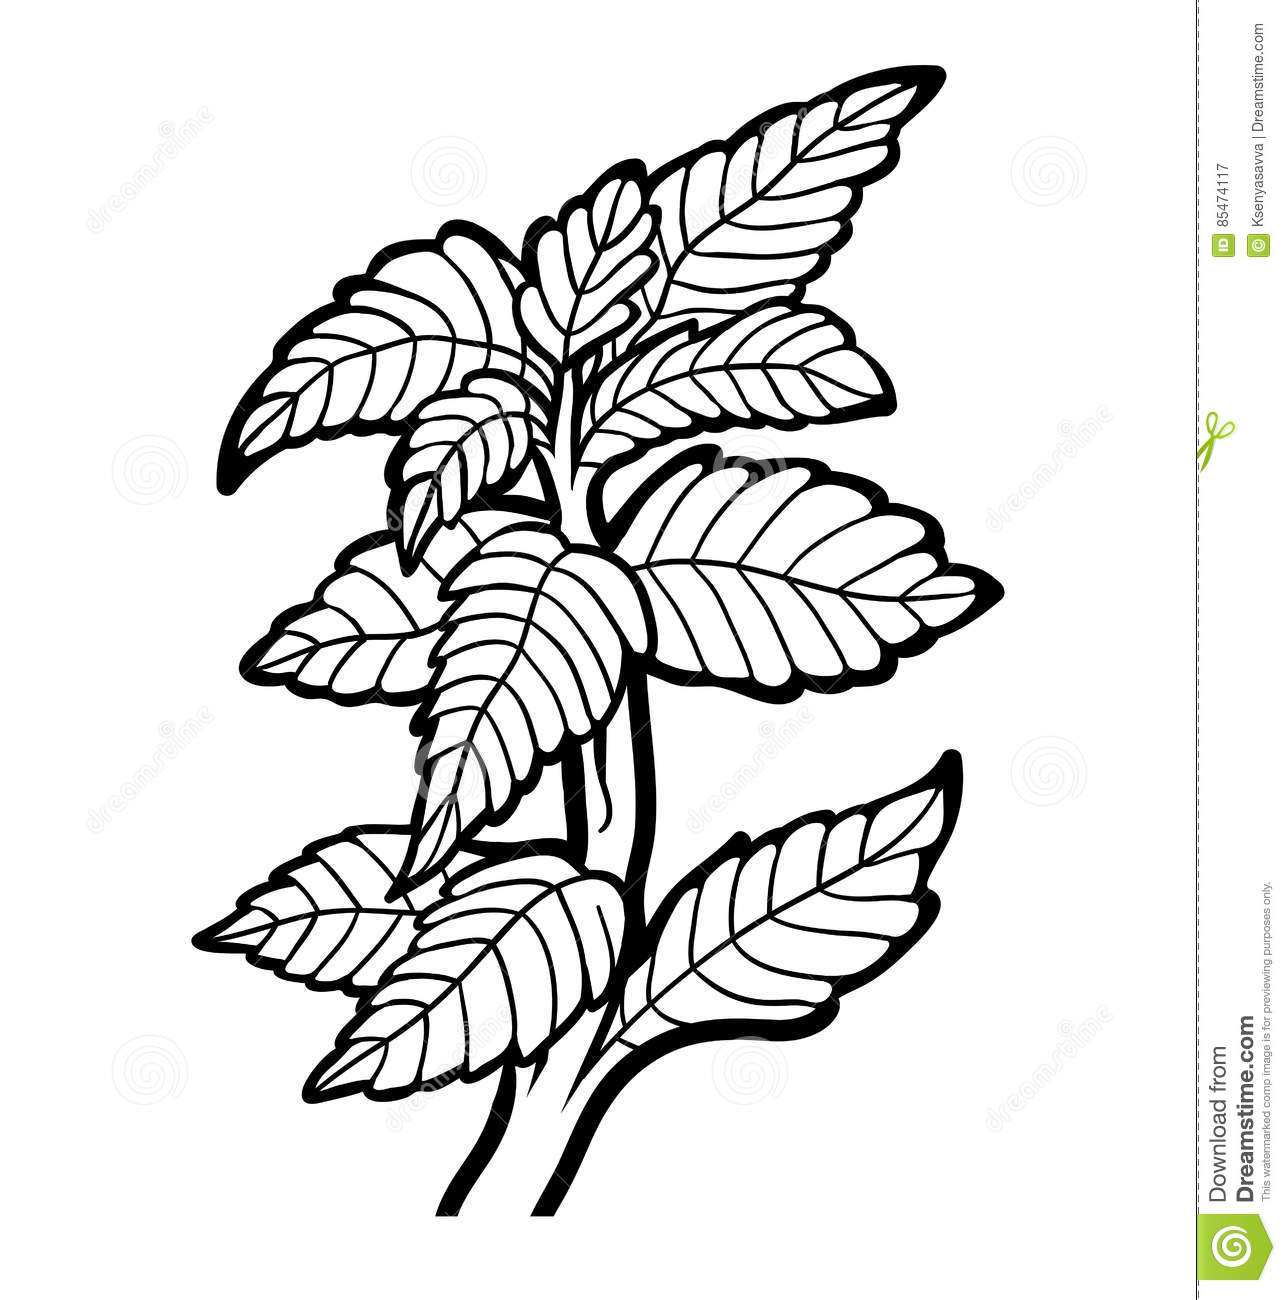 Coloring book, plant, Mint stock vector. Illustration of